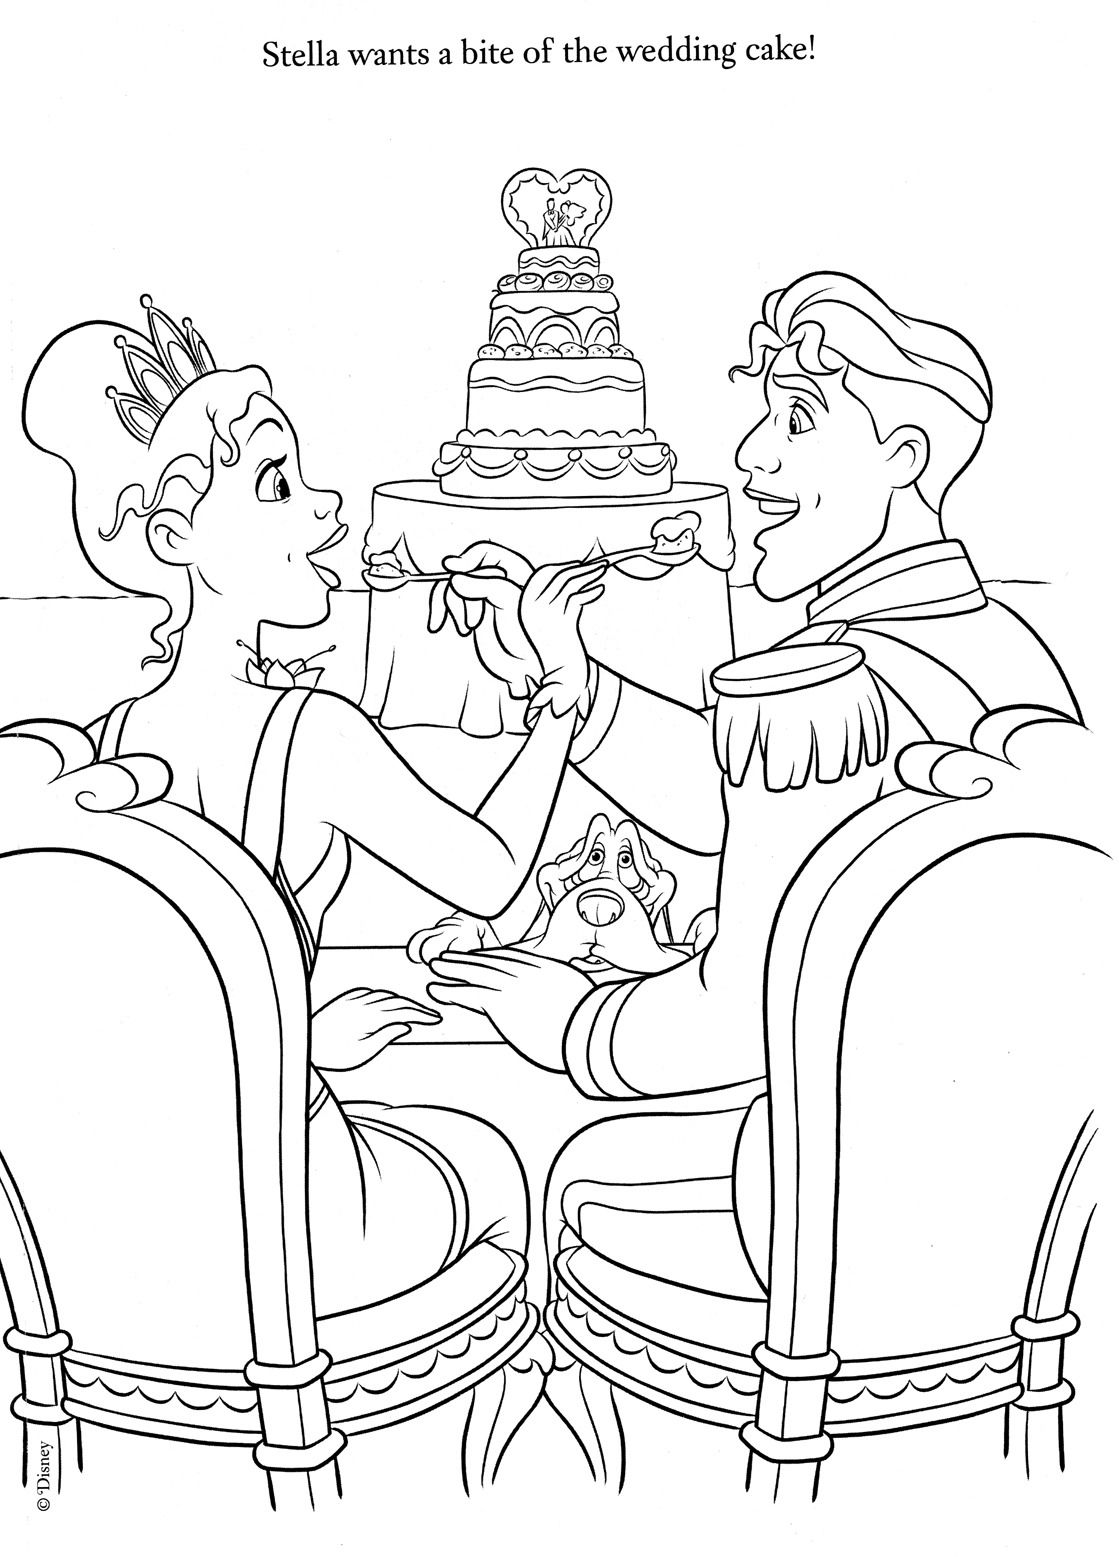 Disney Coloring Pages Photo Wedding Coloring Pages Disney Coloring Pages Frog Coloring Pages